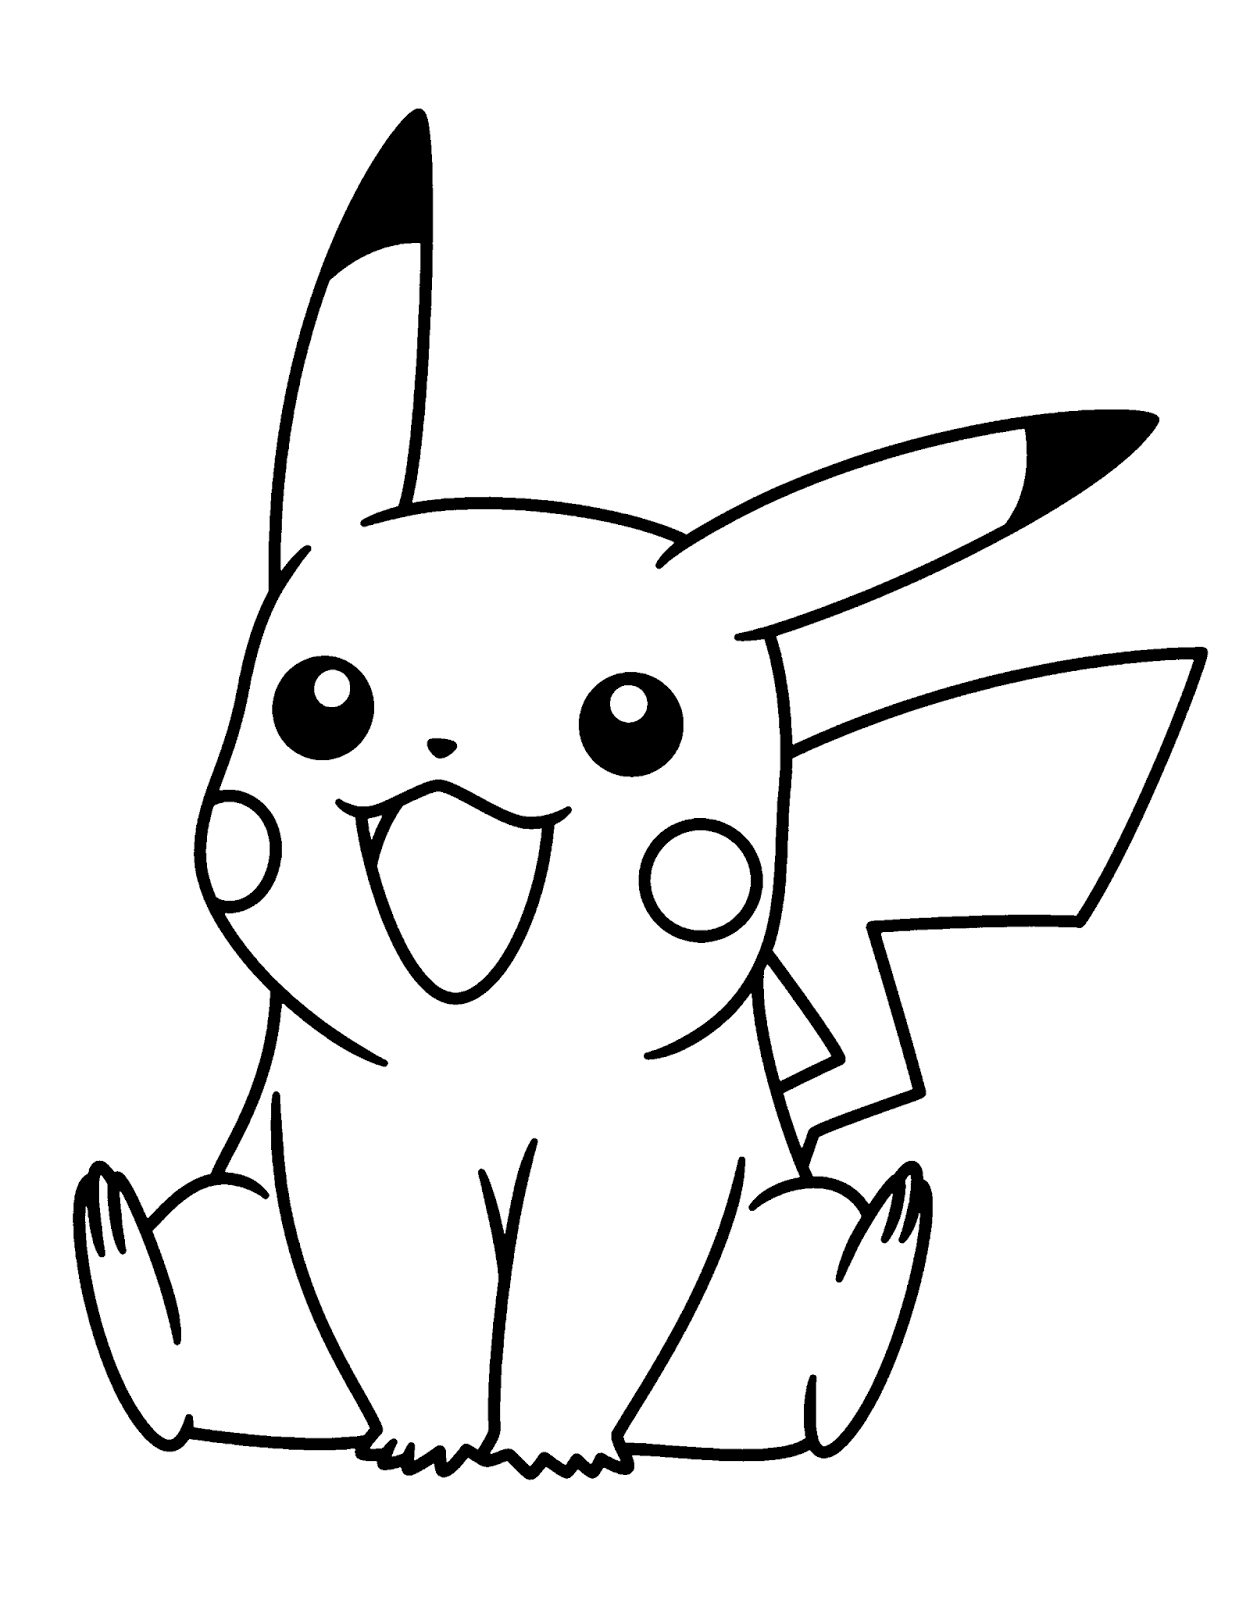 pokemon colouring pictures to print top 93 free printable pokemon coloring pages online print pictures to pokemon colouring